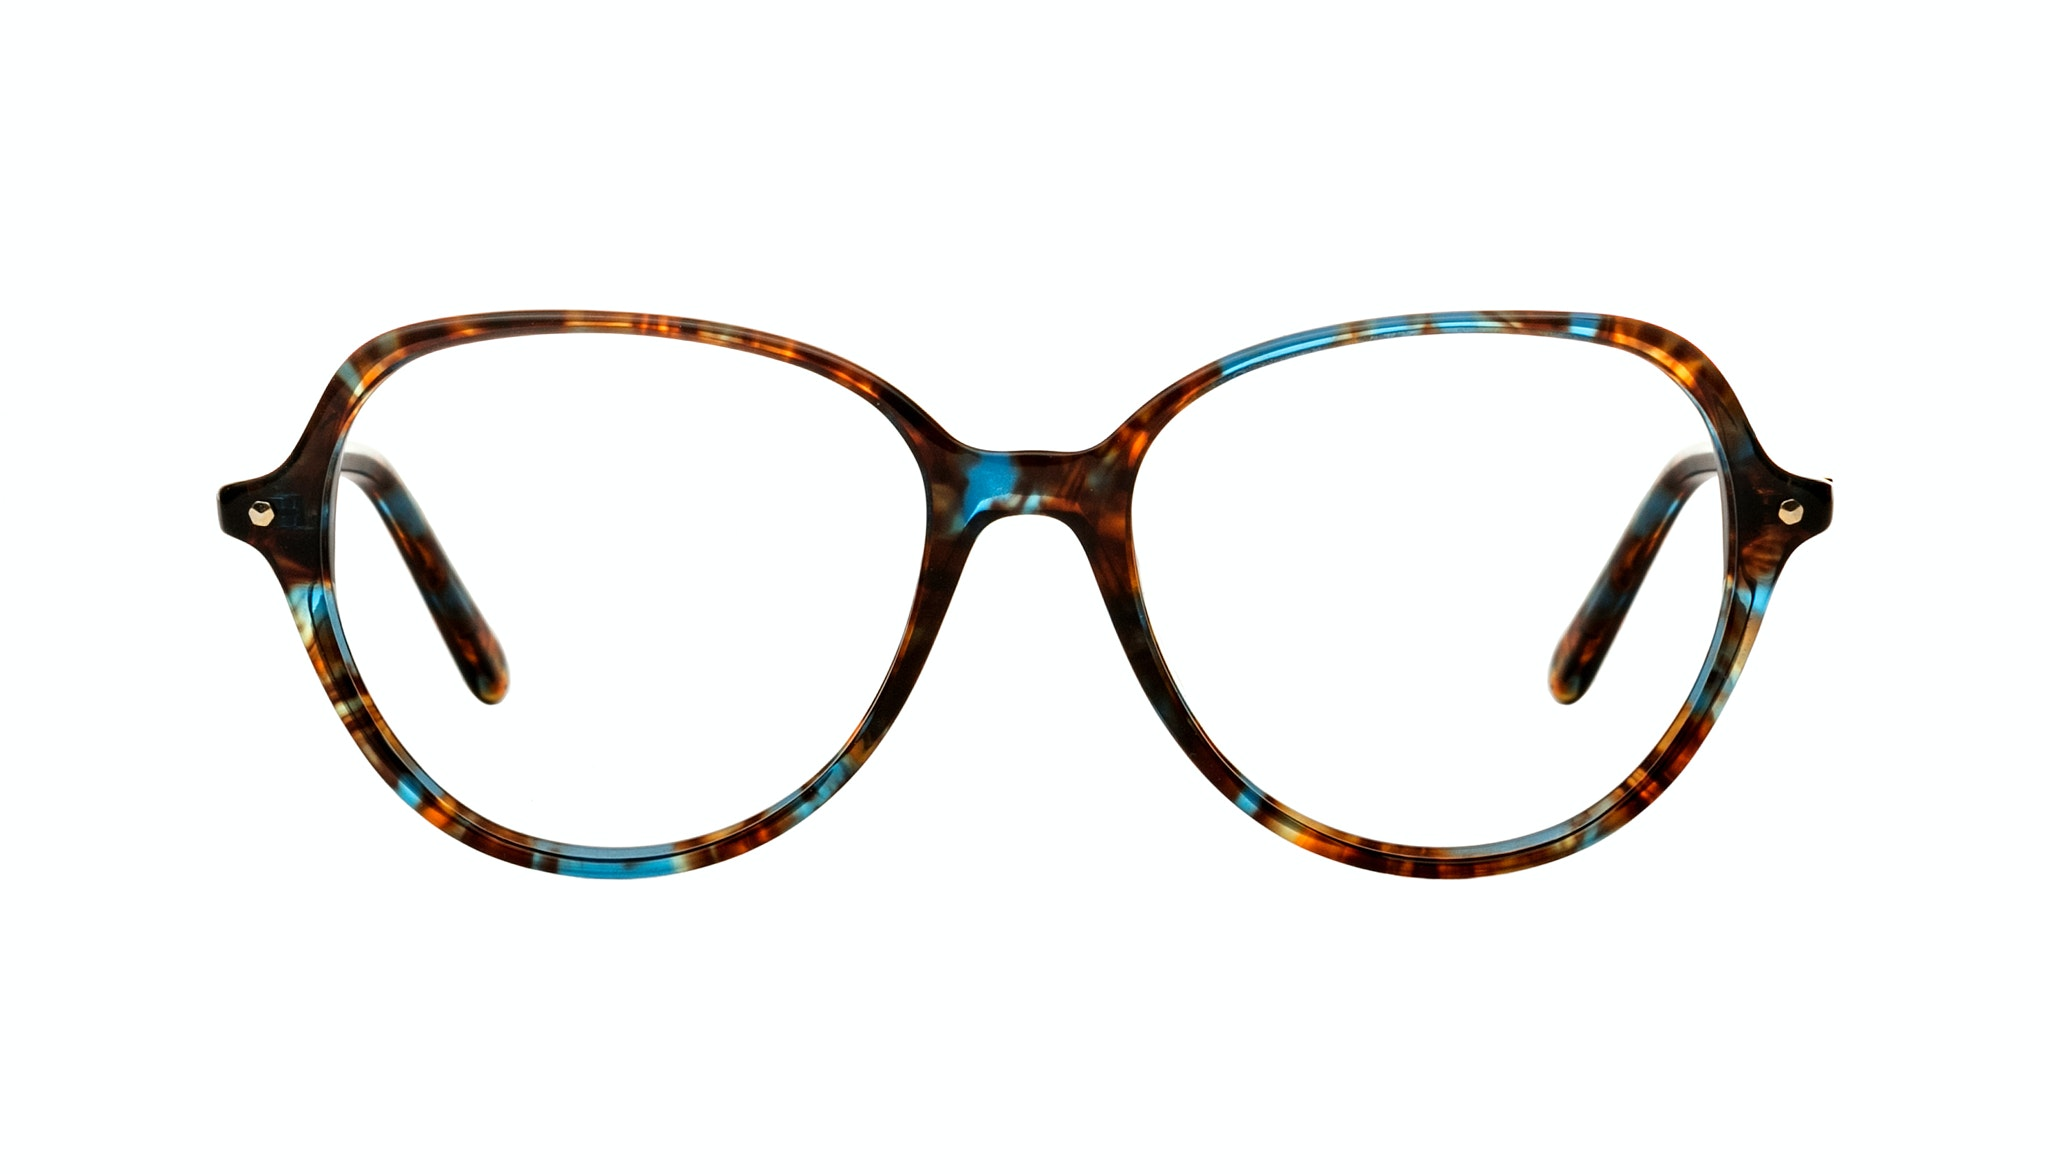 Affordable Fashion Glasses Aviator Round Eyeglasses Women Dazzle Blue Storm